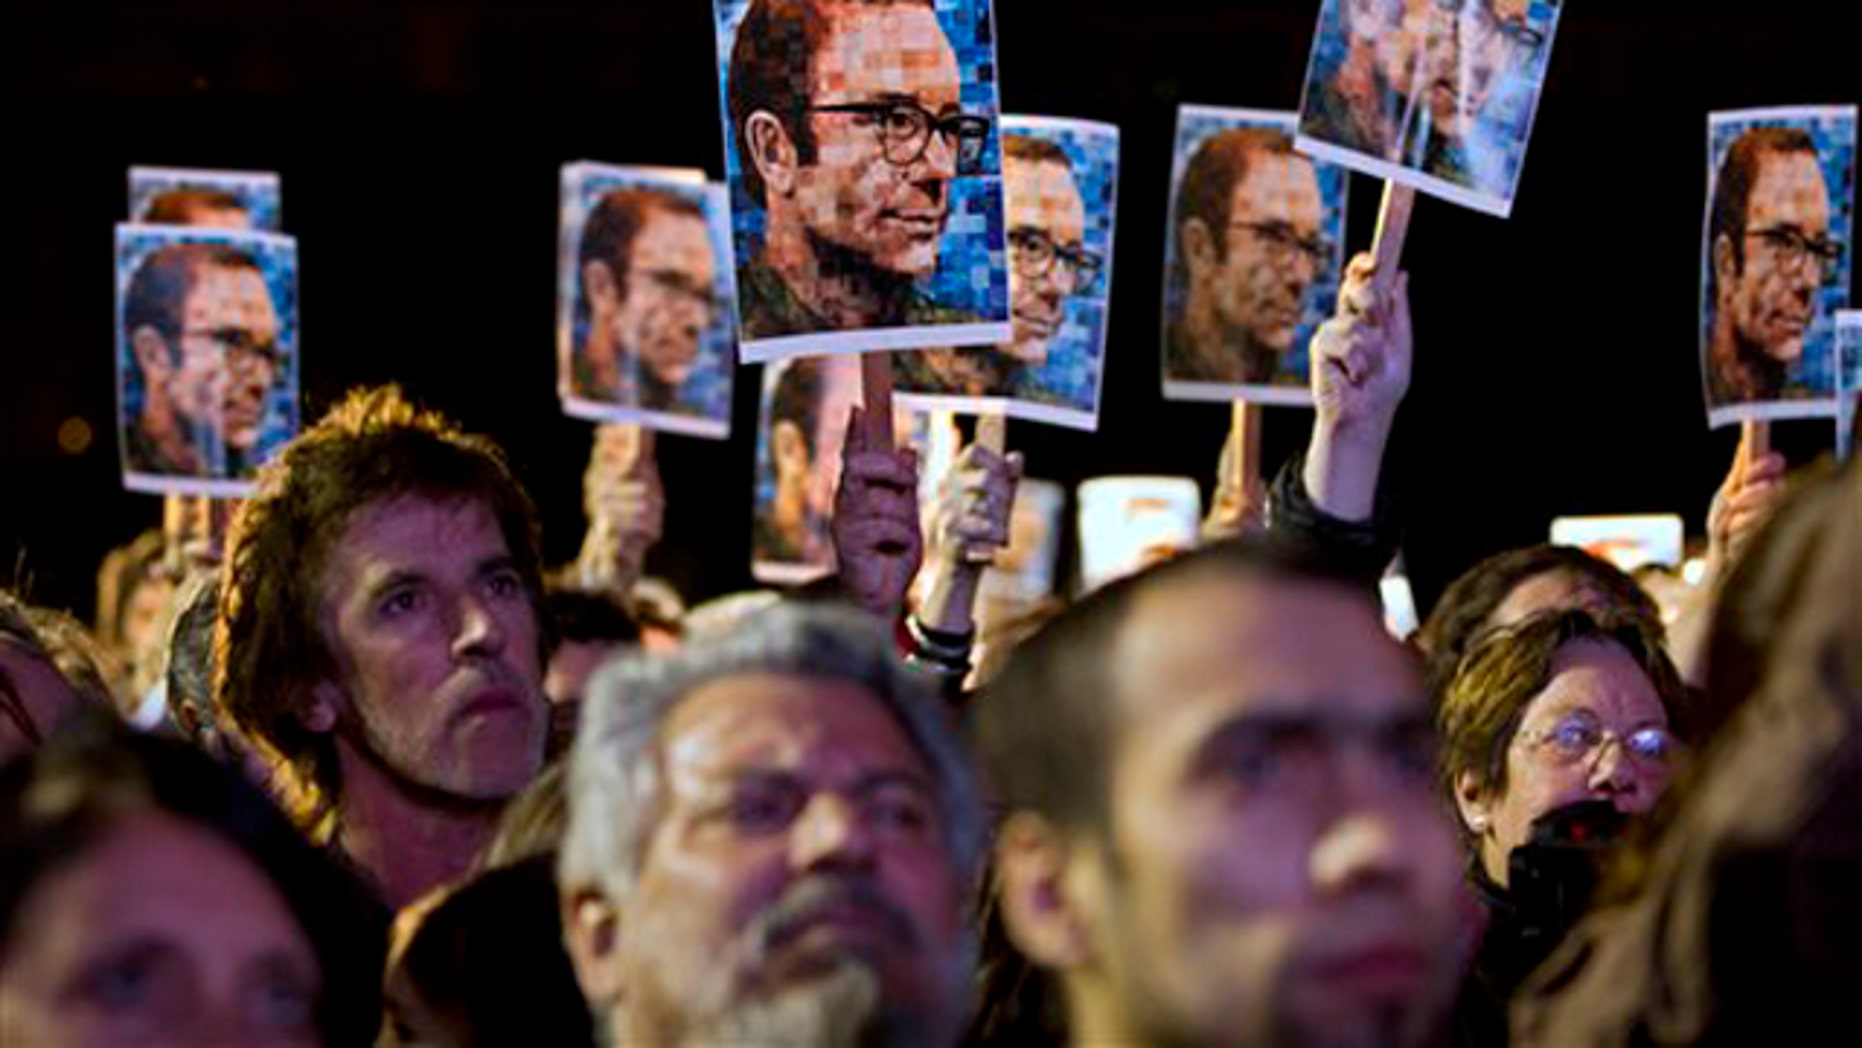 Oct. 26, 2011: People hold up photos of Argentine missing journalist and writer Rodolfo Walsh as they wait for the verdict of a trial against former military and police officials in Buenos Aires, Argentina on Wednesday.